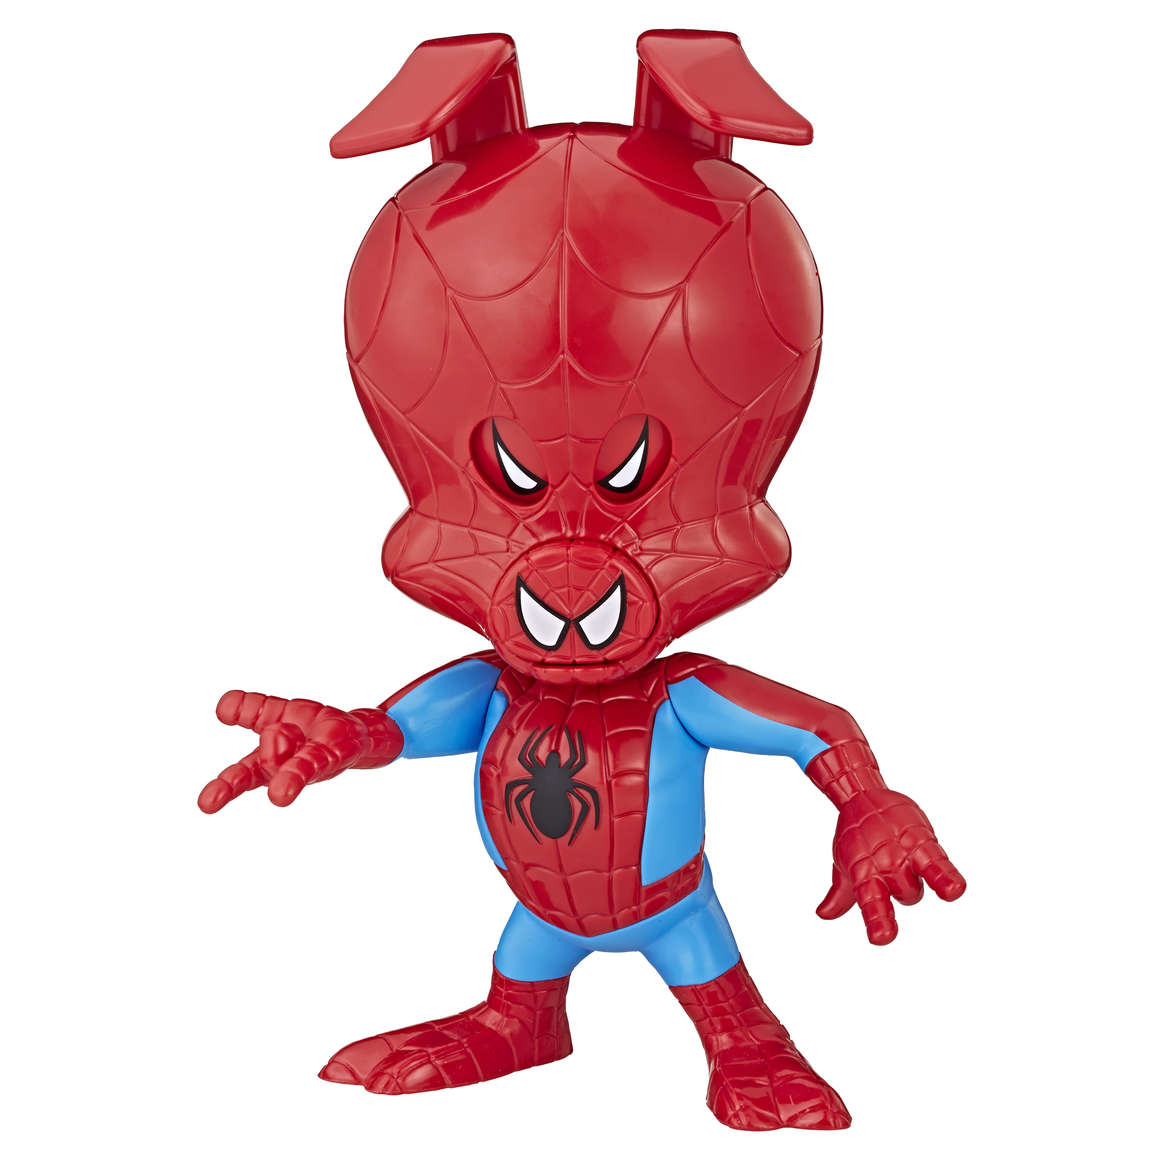 MARVEL_SPIDER-MAN_INTO_THE_SPIDER-VERSE_SPIN_VISION_SPIDER-HAM_-_oop3